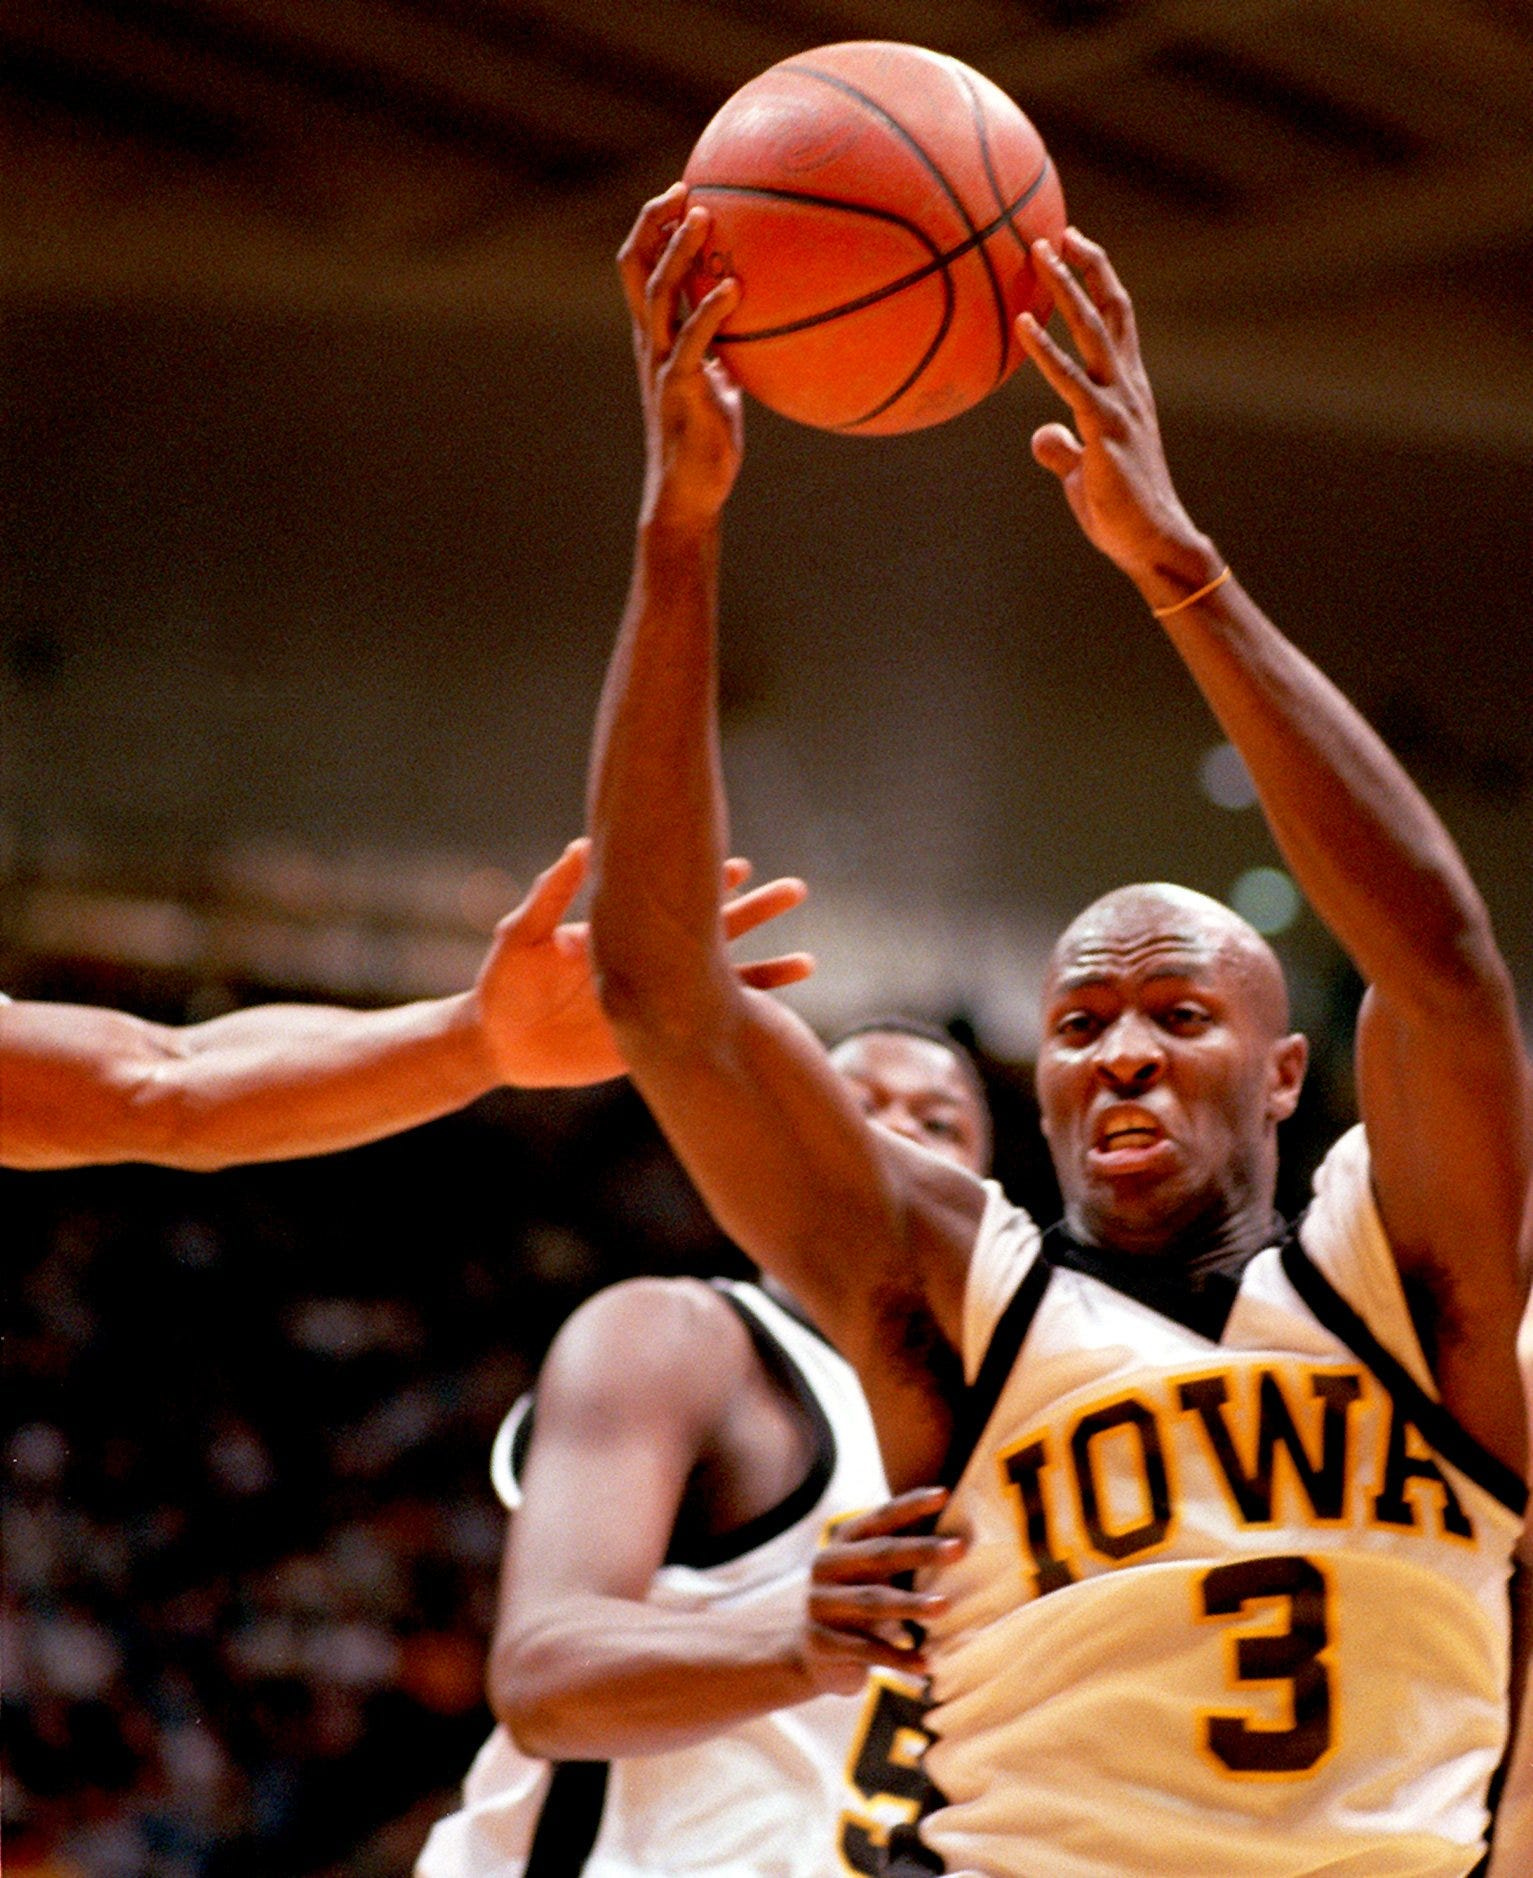 From the archives: Photos of former Iowa basketball player Kenyon Murray